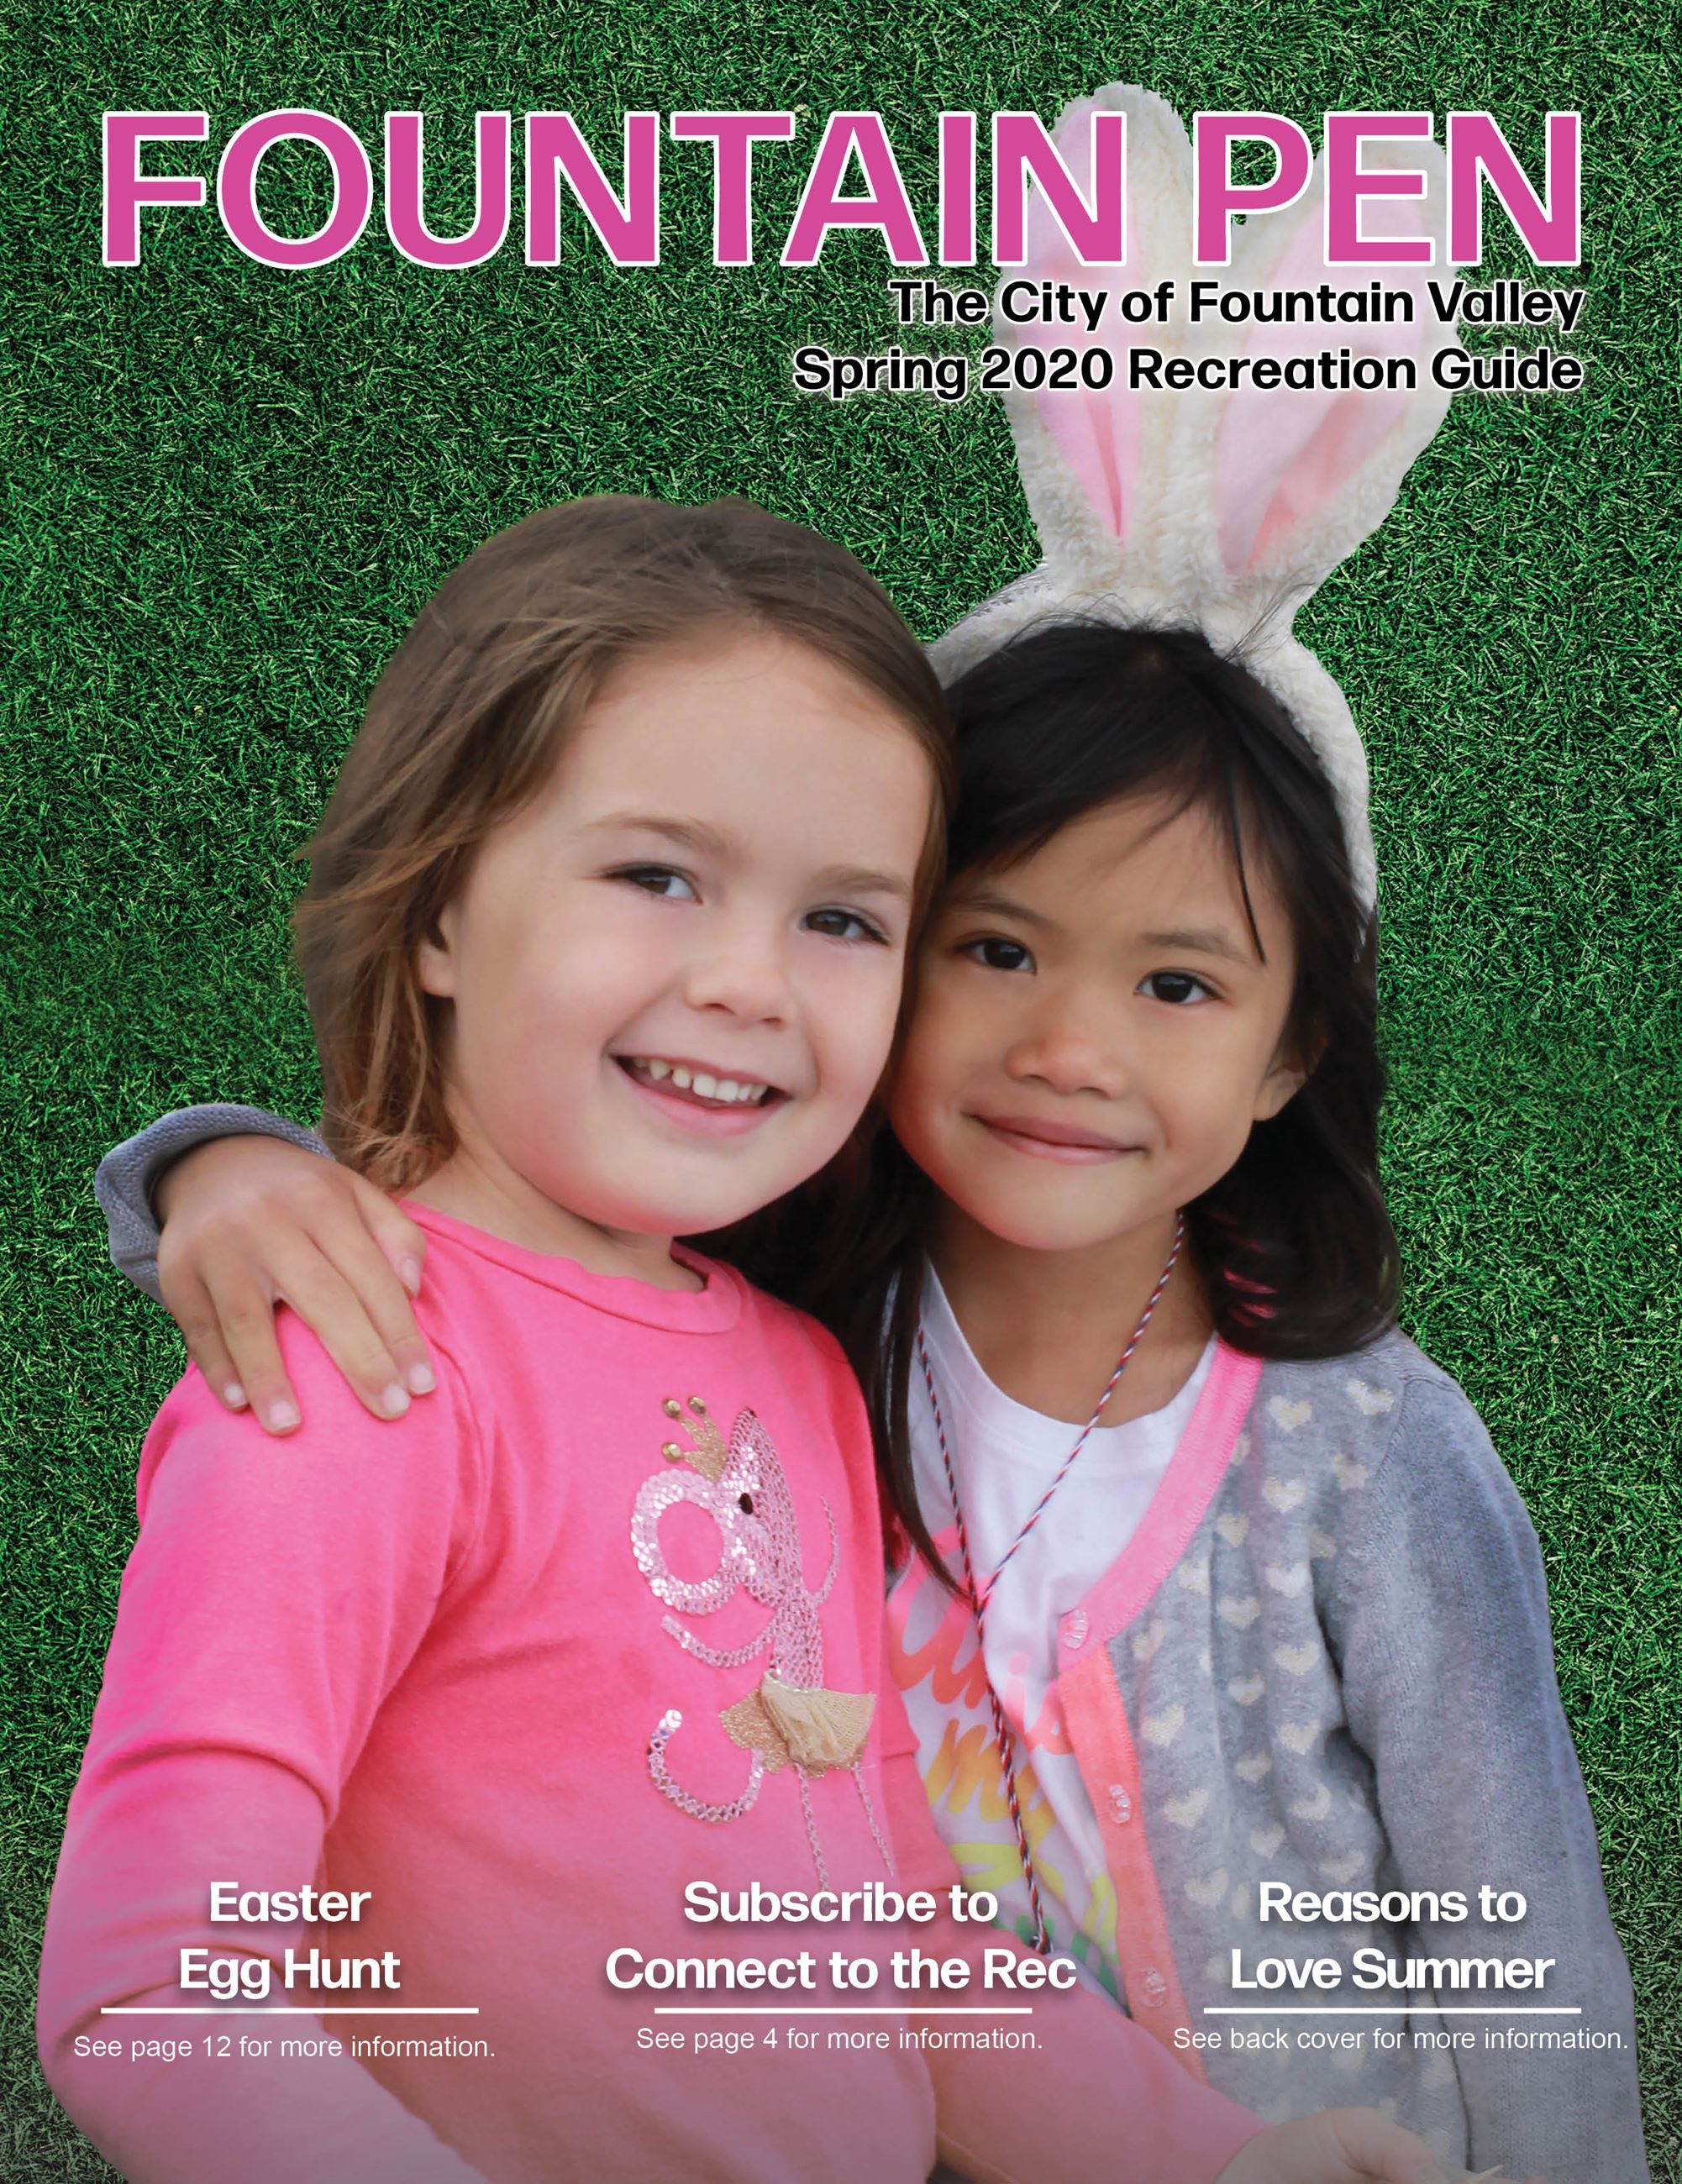 The Spring Fountain Pen Cover, photo of two girls smiling and hugging at the Easter Egg Hunt.